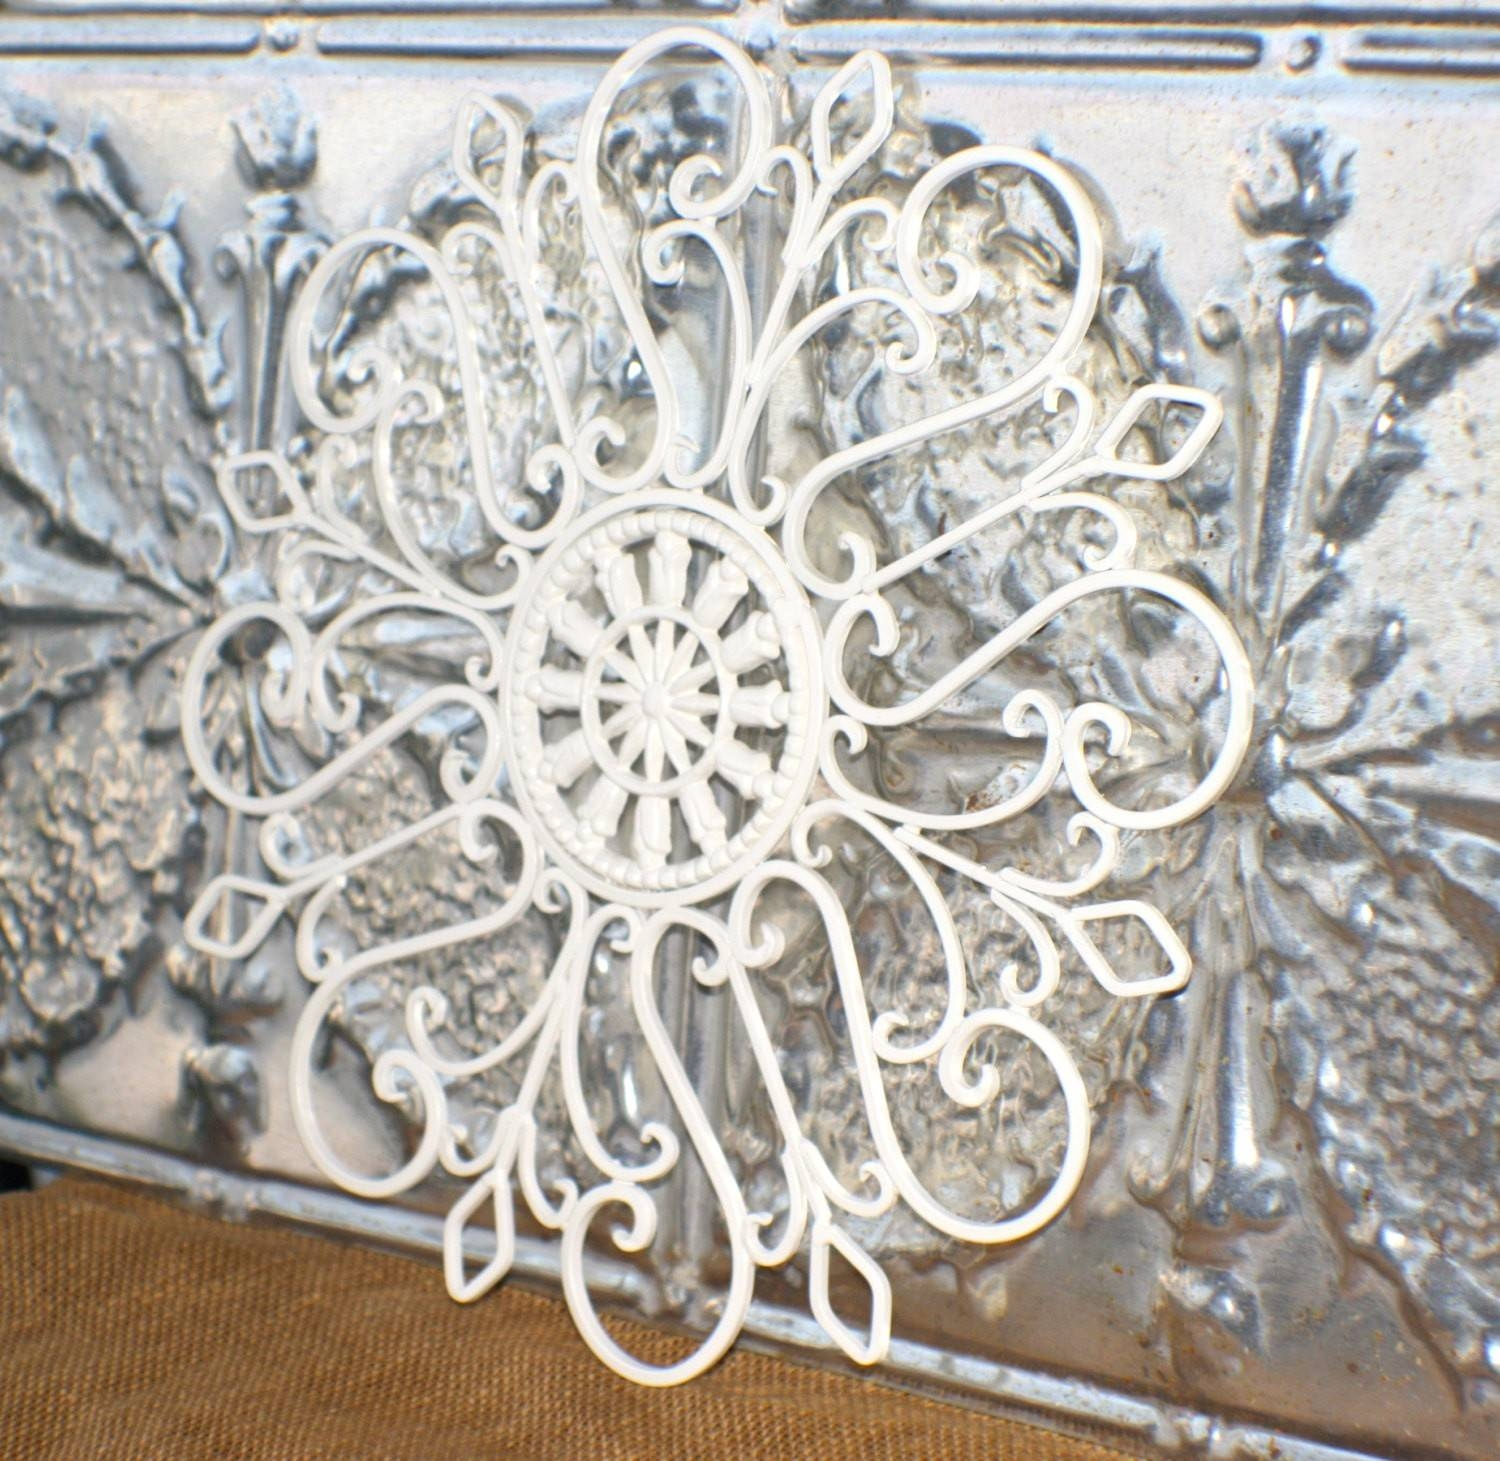 2014 Outdoor Decor Ideas – Metal Wall Art Medallion/ Creamy White Within Newest Cream Metal Wall Art (View 3 of 20)